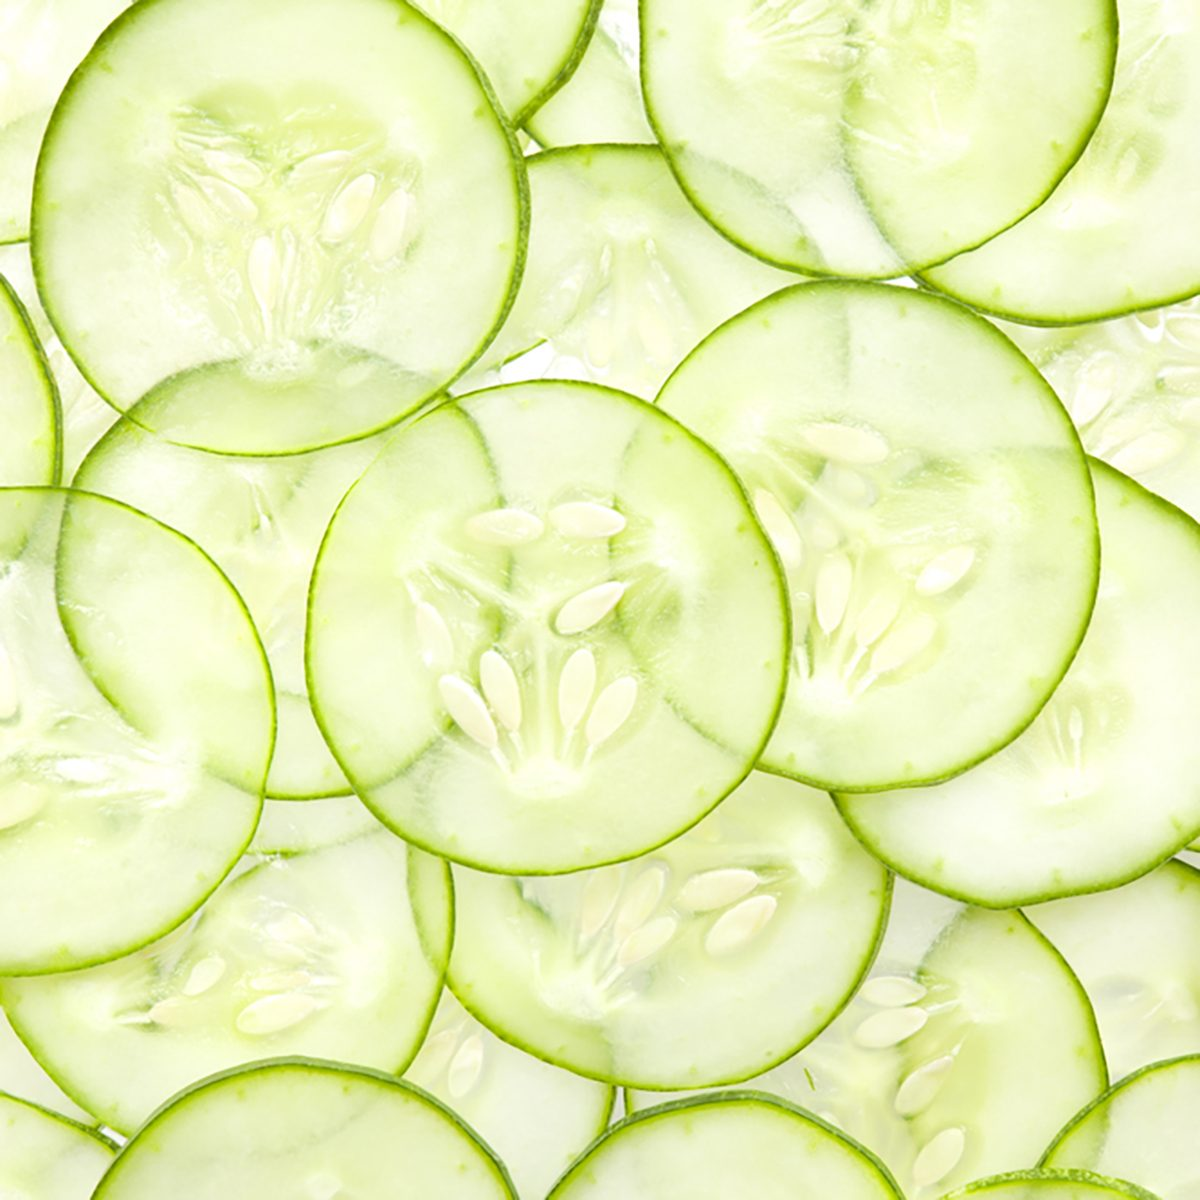 Fresh Cucumber and slices white background